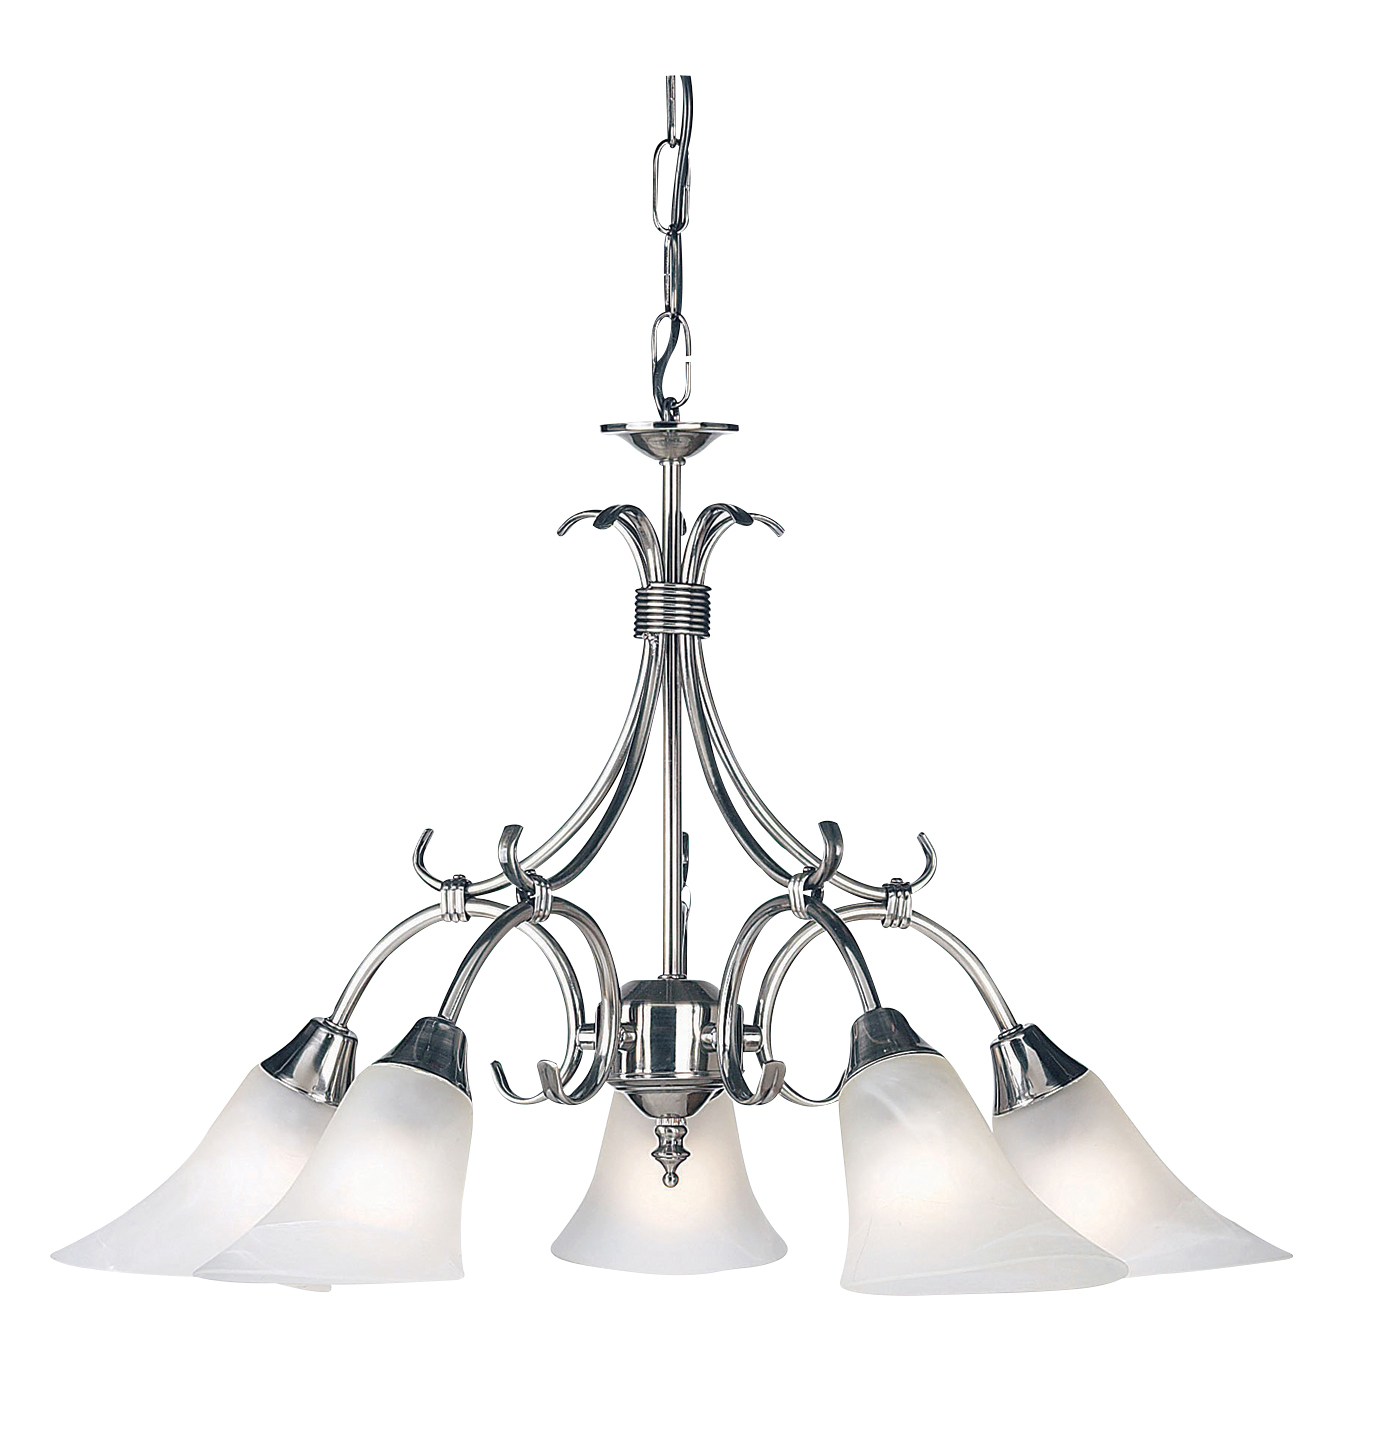 Endon Hardwick pendant 5x 40W Antique silver effect plate & frosted glass Thumbnail 1